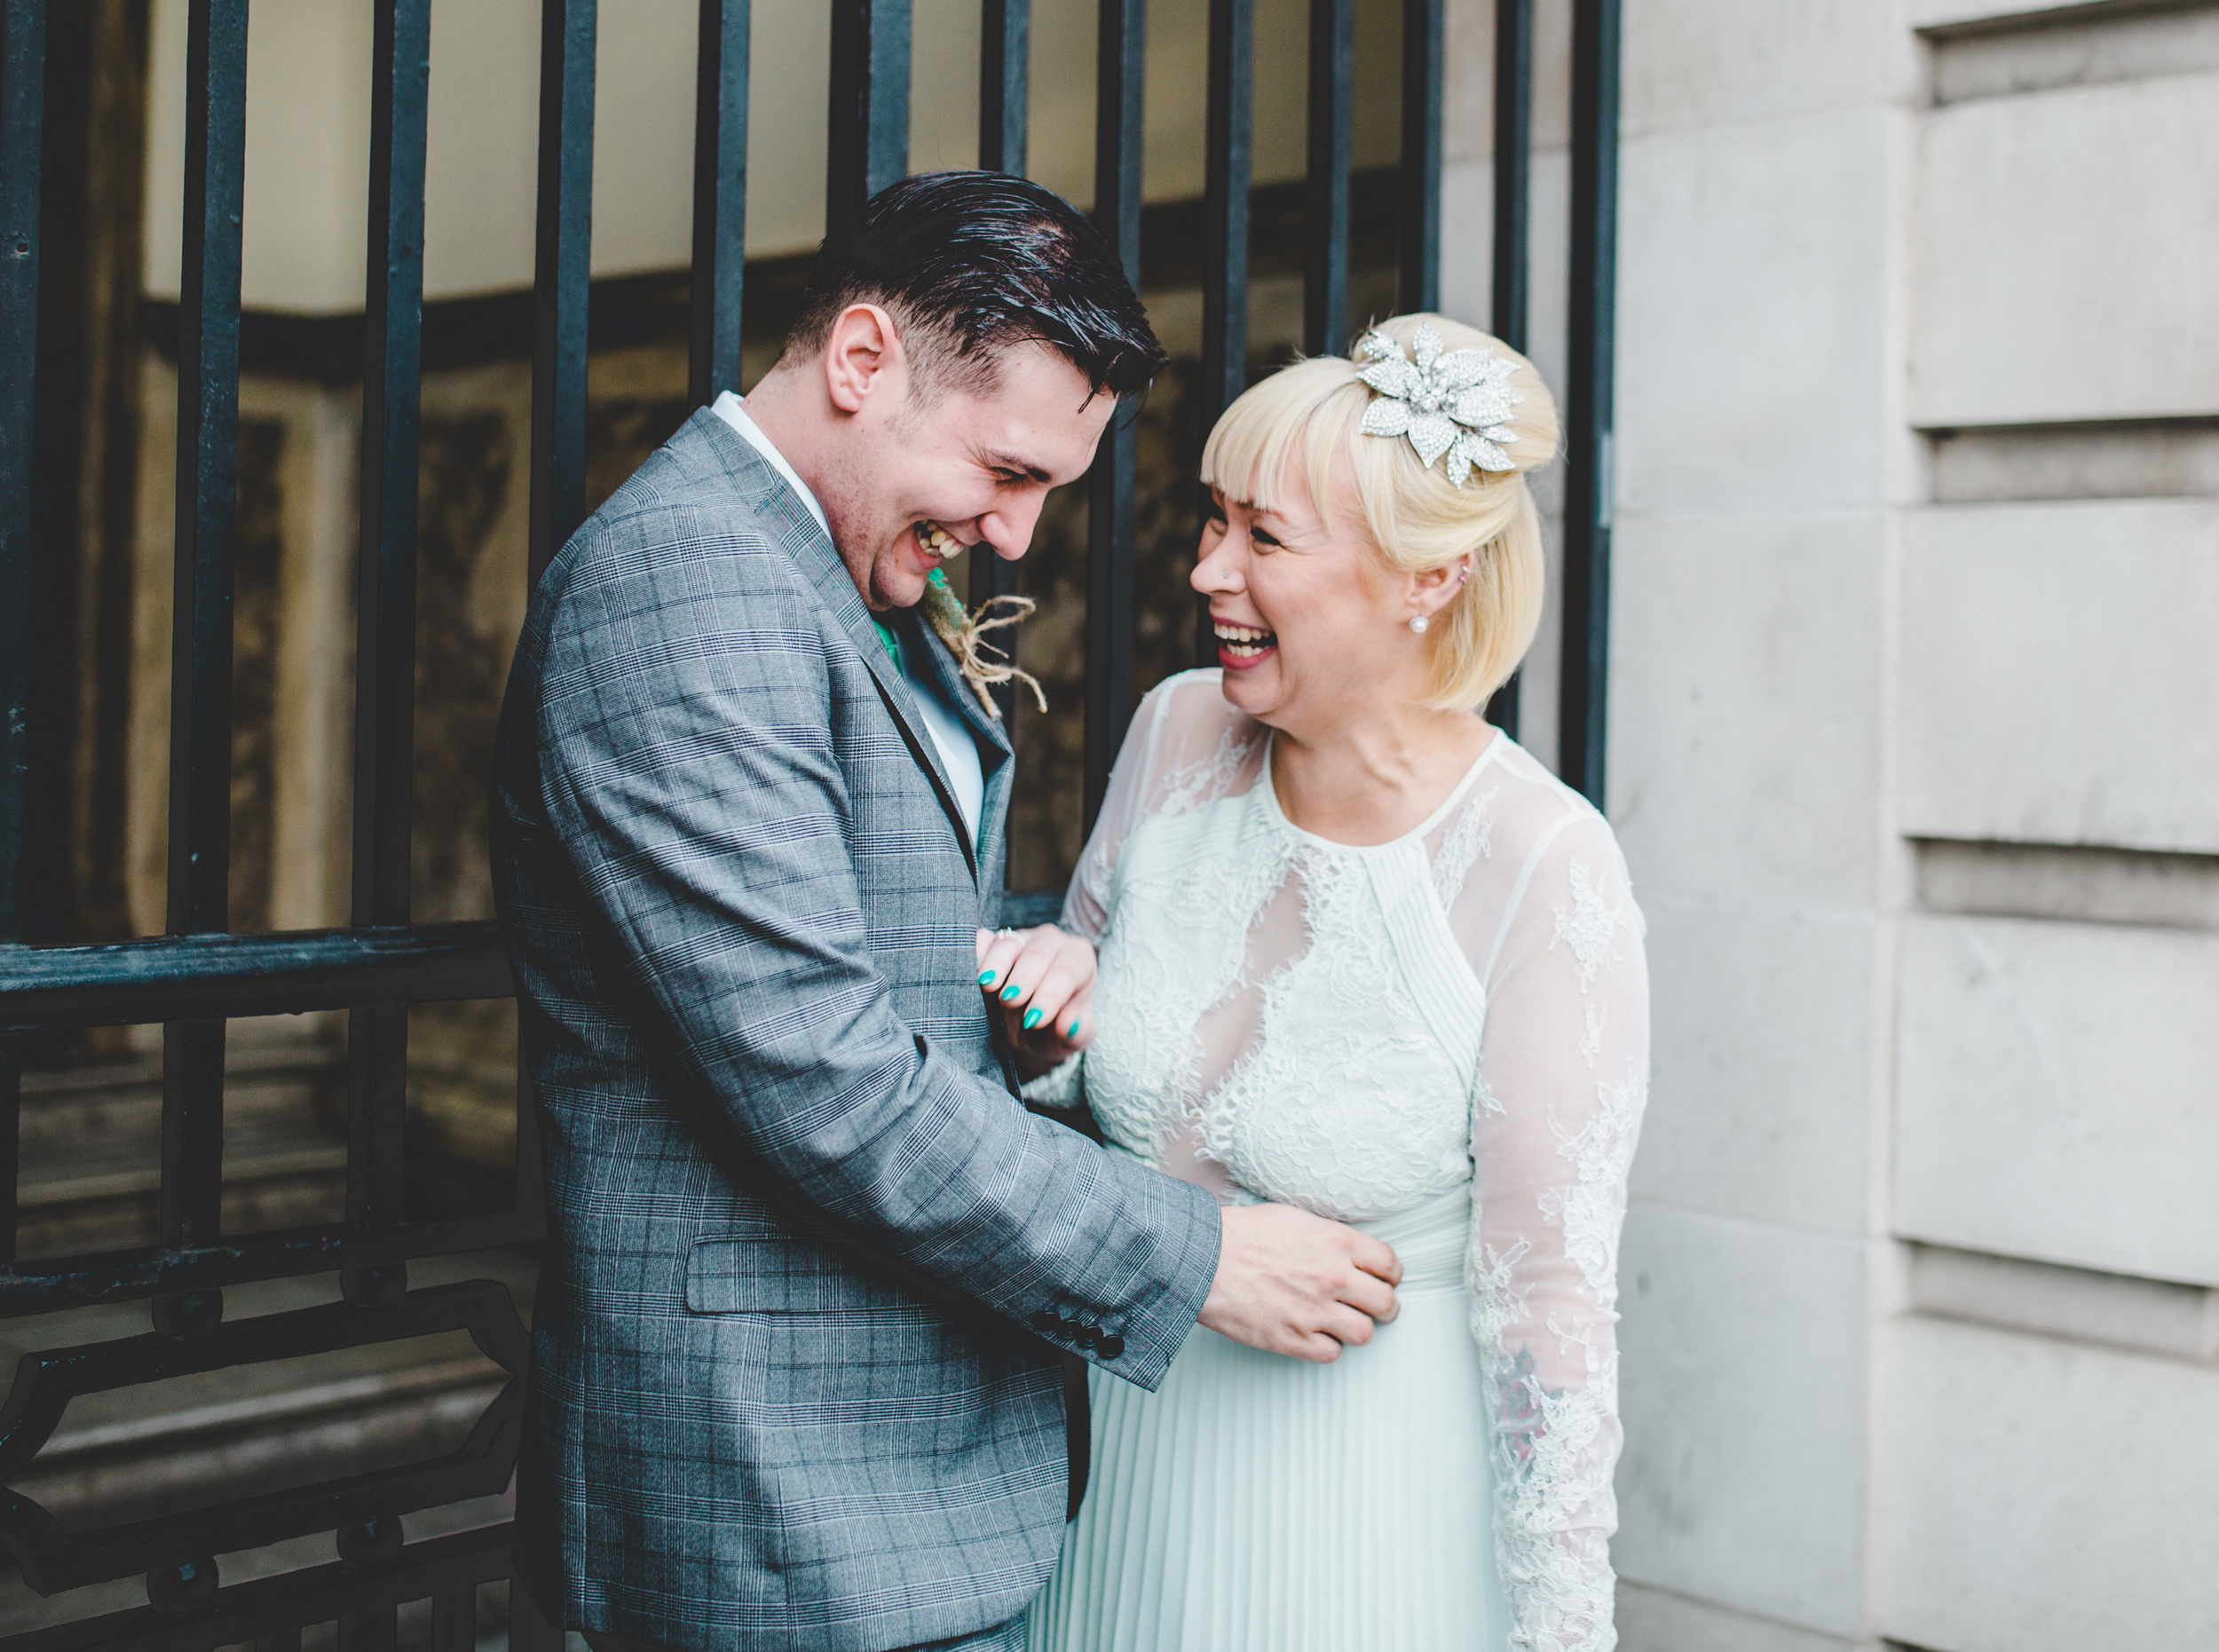 giggly and relaxed wedding pictures - Stockport Town Hall